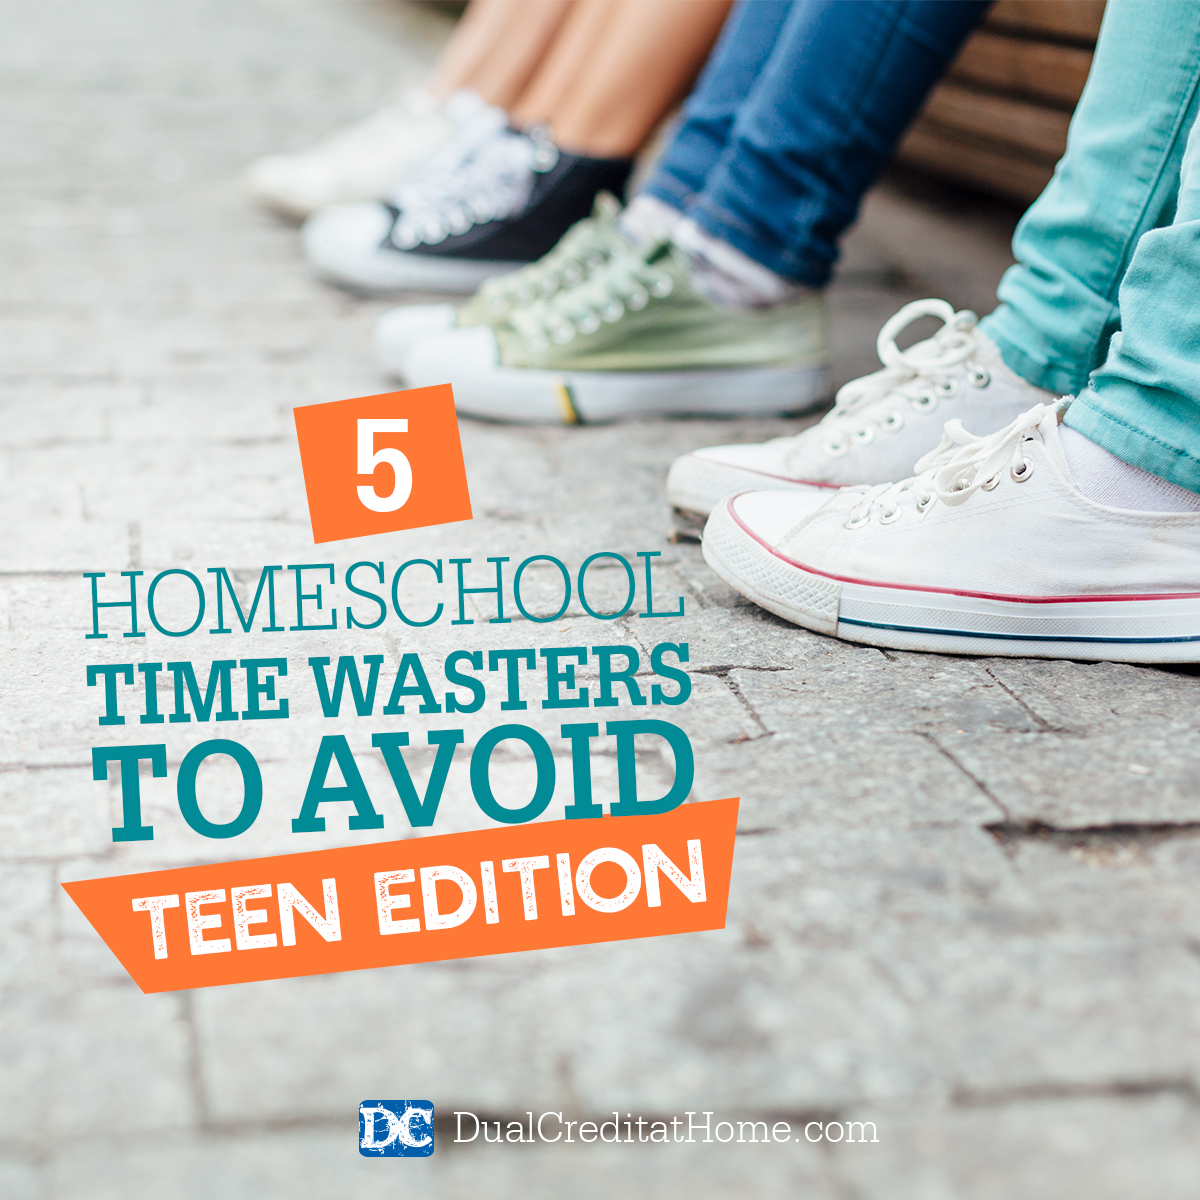 5 Homeschool Time Wasters to Avoid - Teen Edition